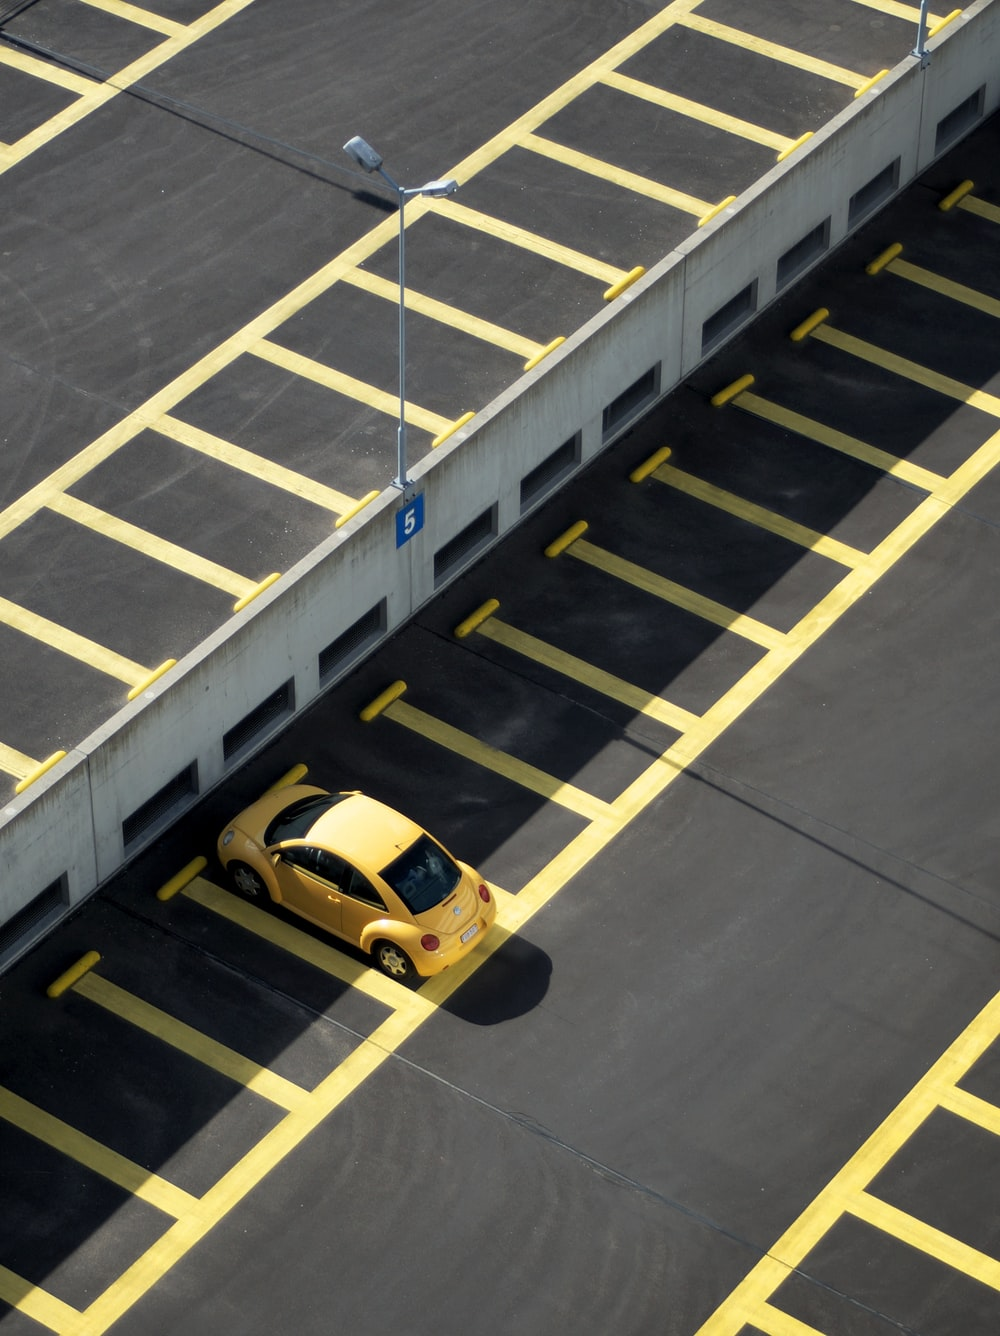 yellow coupe on parking lot at daytime